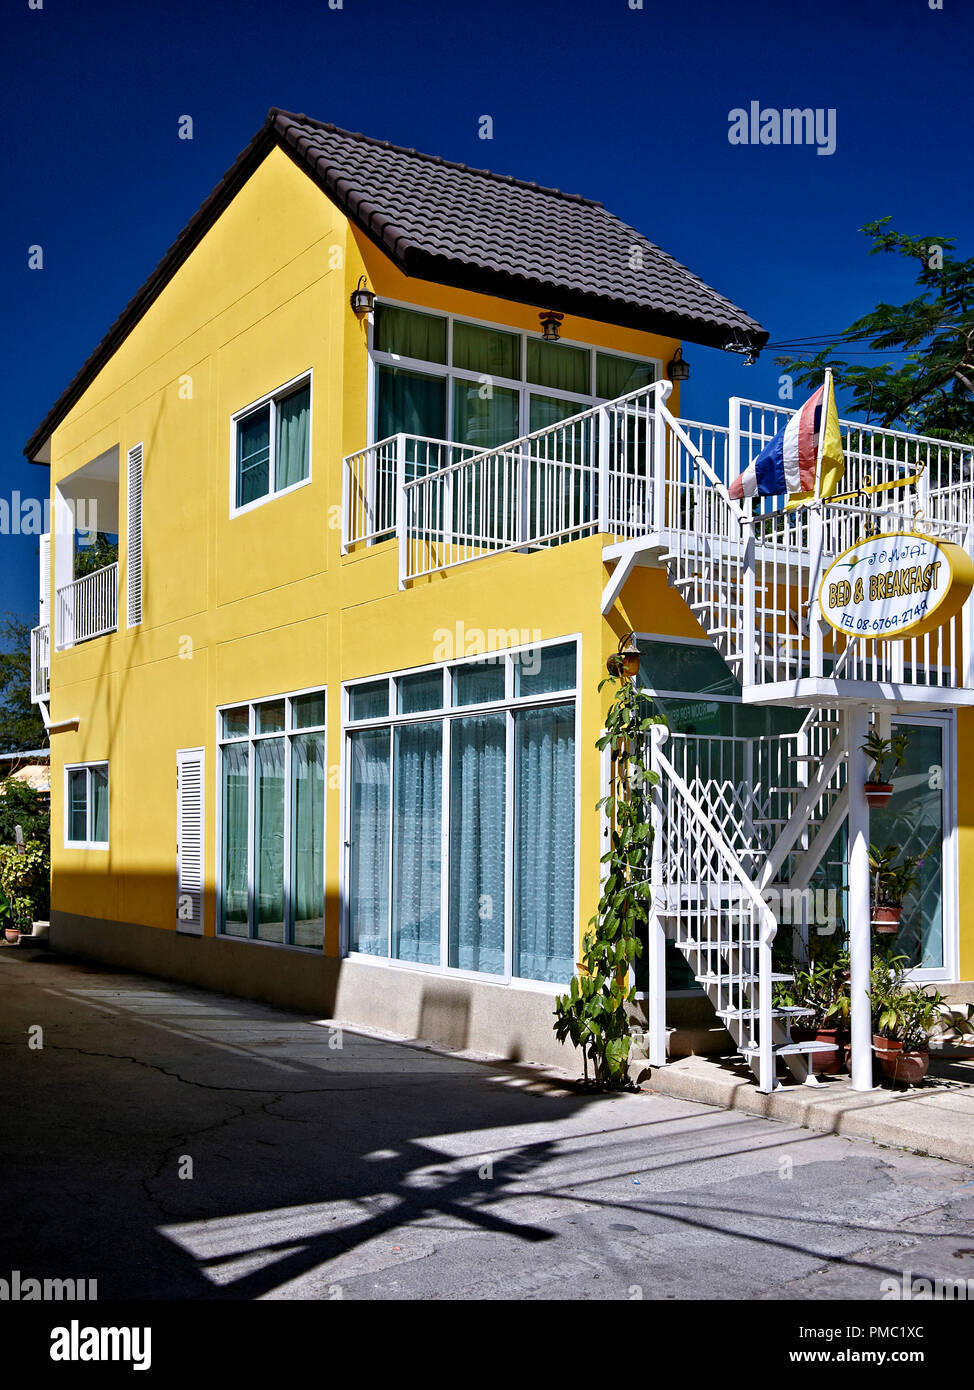 Bed and Breakfast guest house accommodation. B & B guesthouse Thailand Asian  Southeast Asia